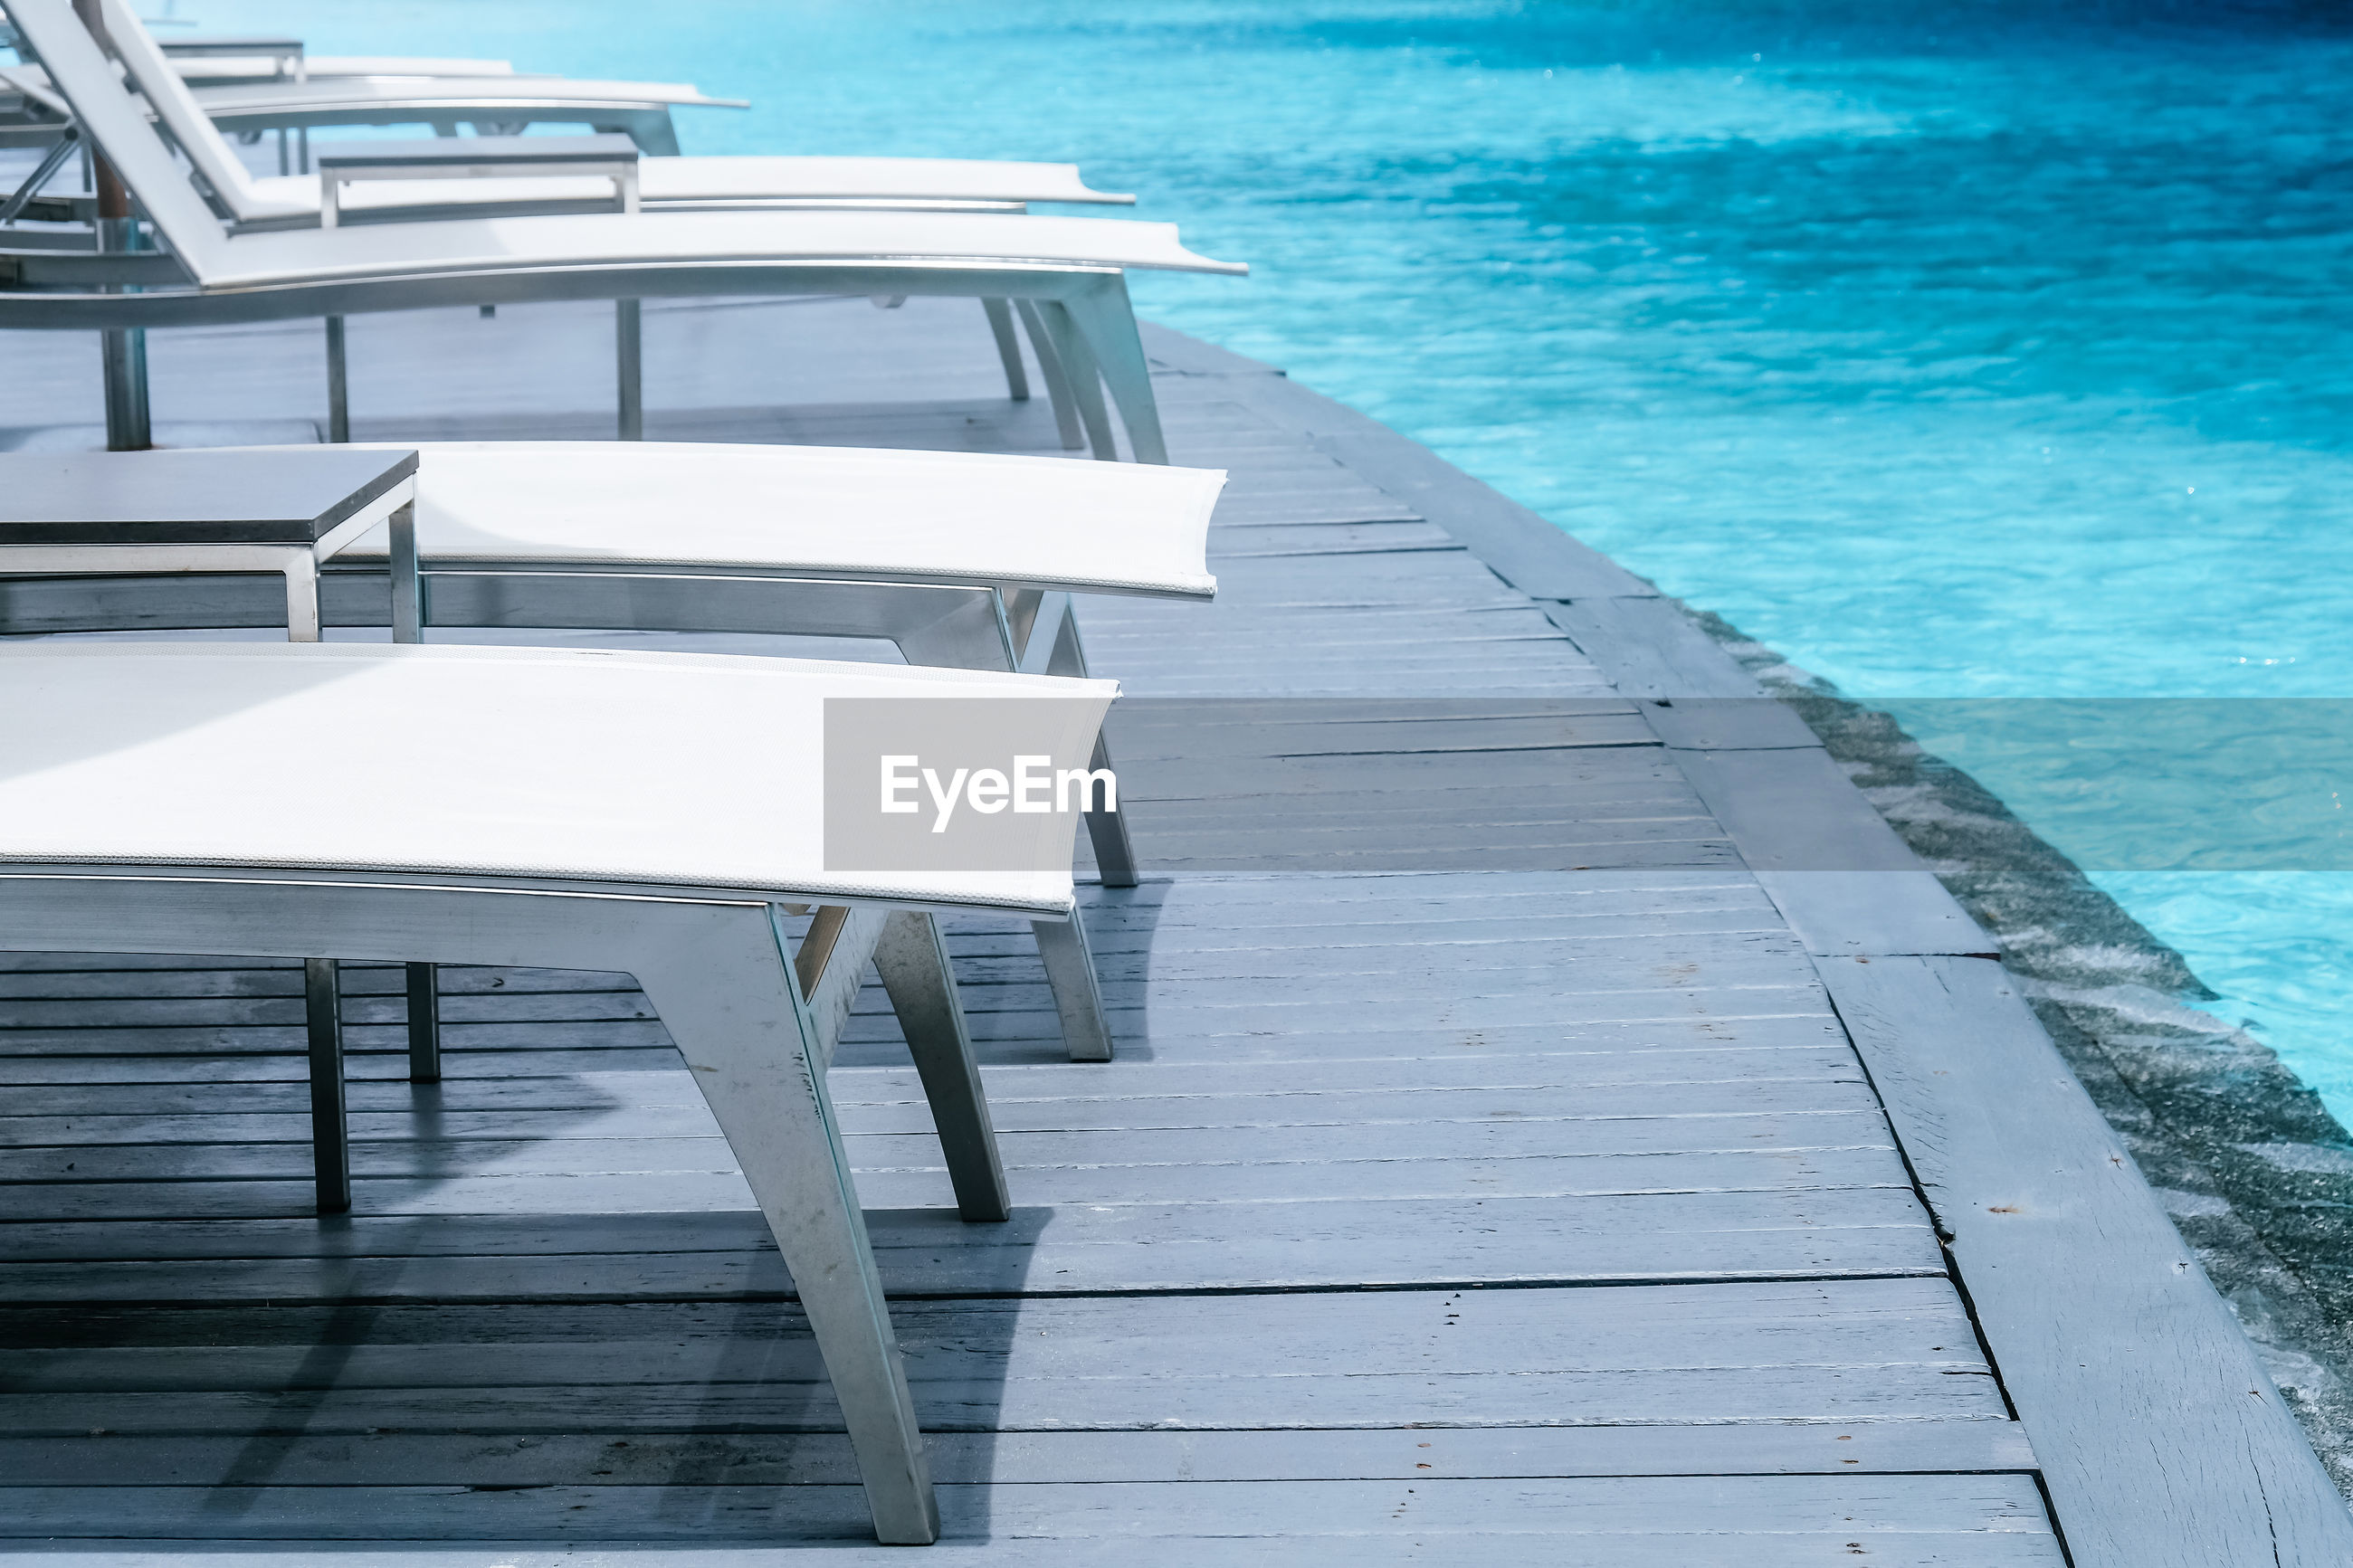 HIGH ANGLE VIEW OF EMPTY CHAIRS BY SWIMMING POOL AGAINST SEA